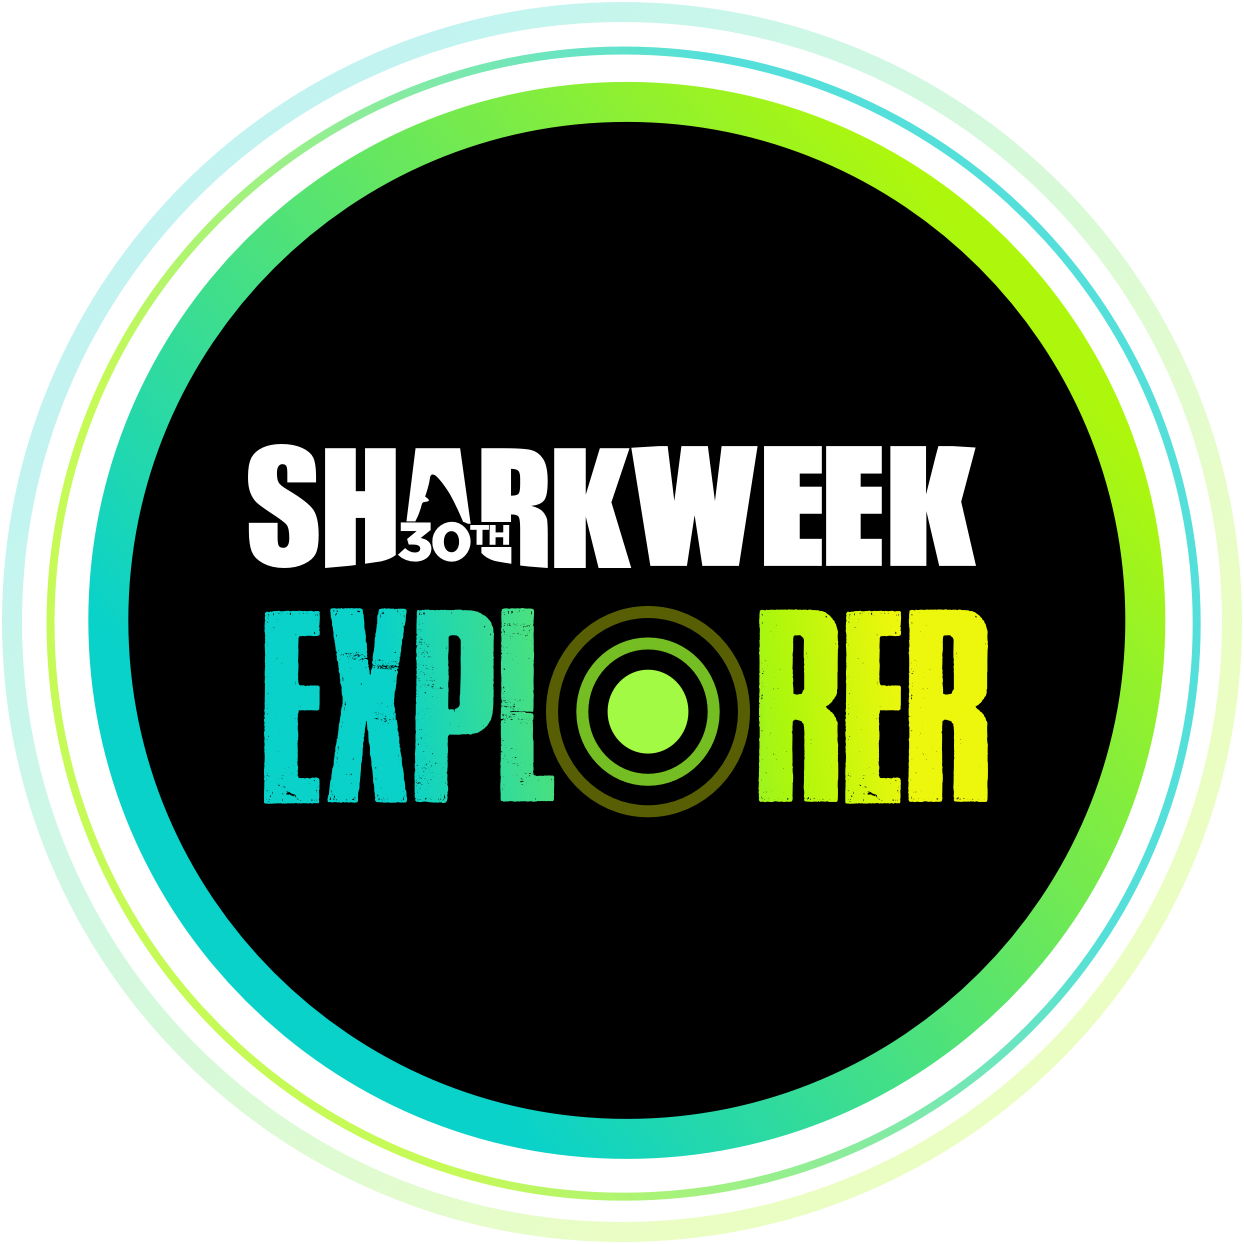 shark week explorer logo